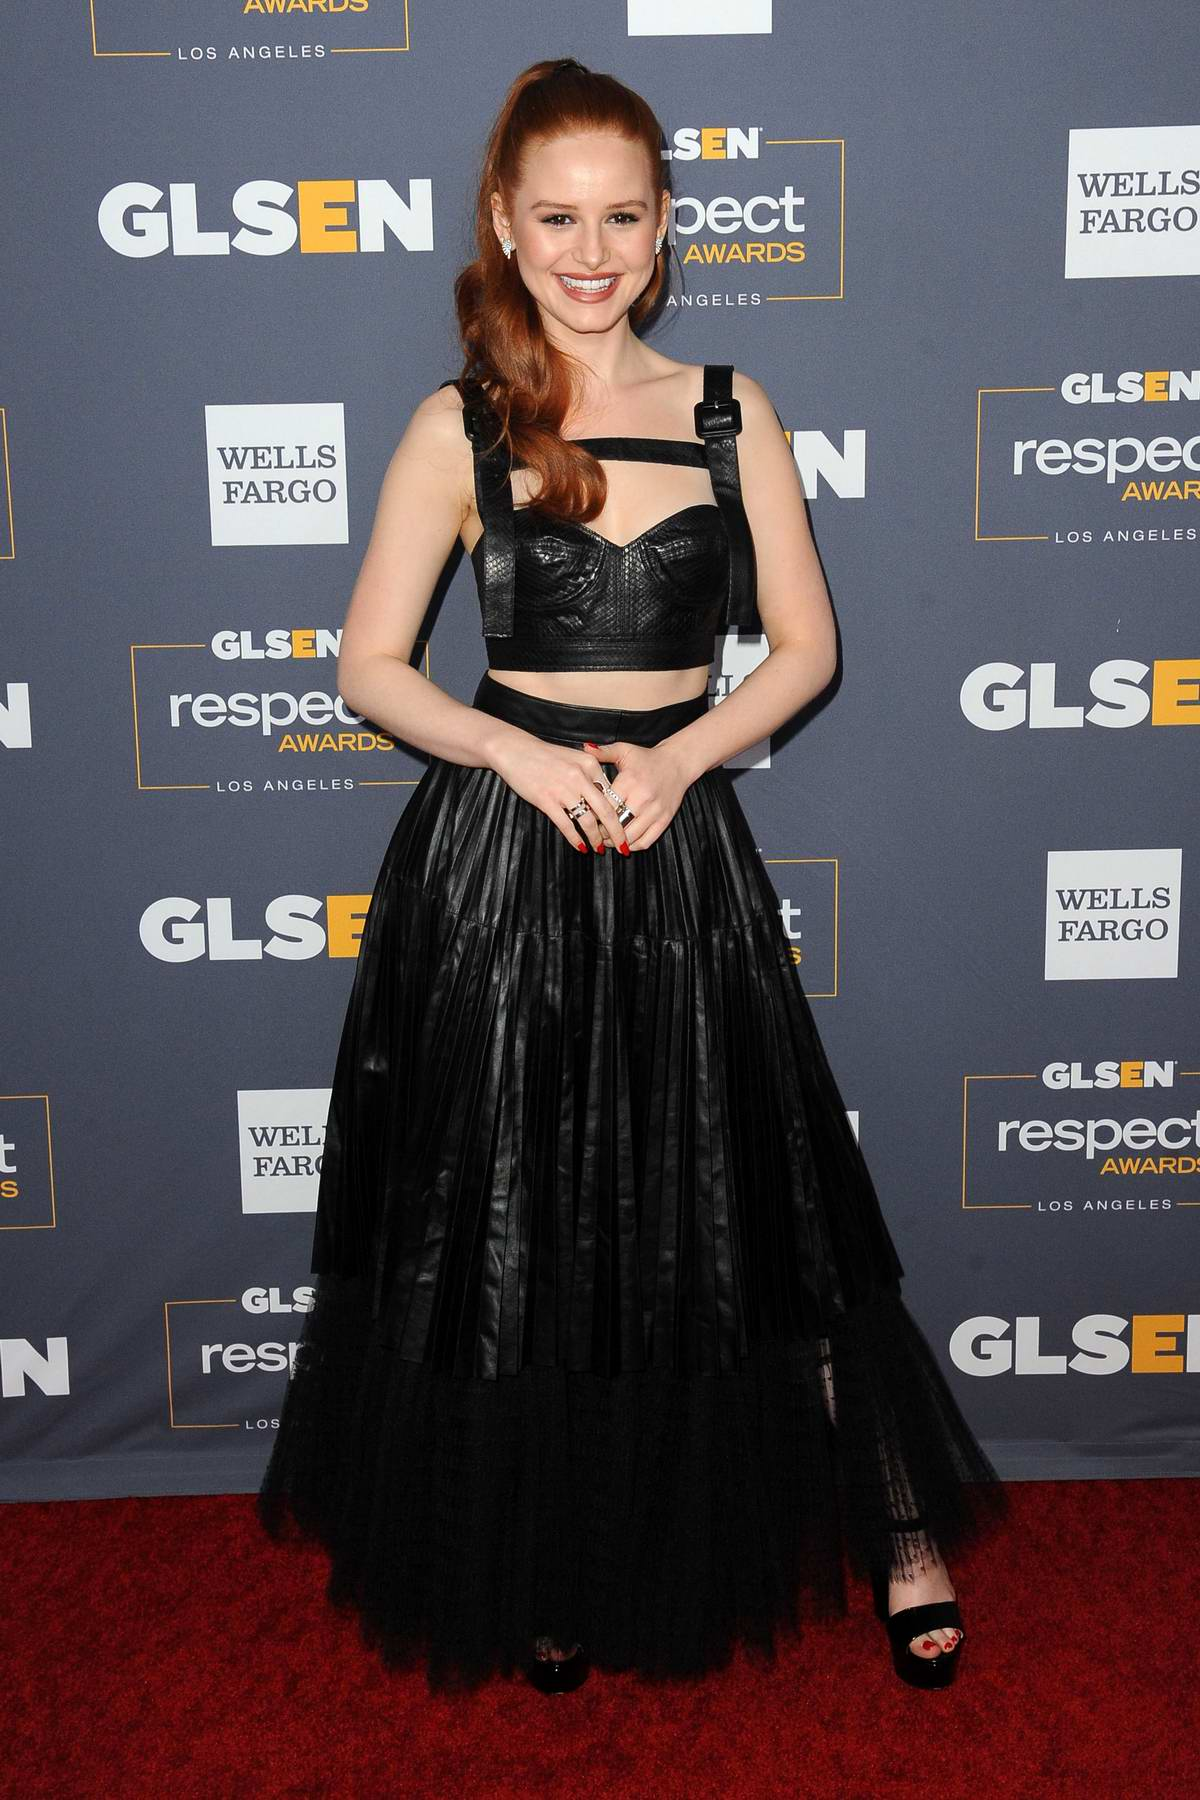 Madelaine Petsch attends the GLSEN Respect Awards in Los Angeles